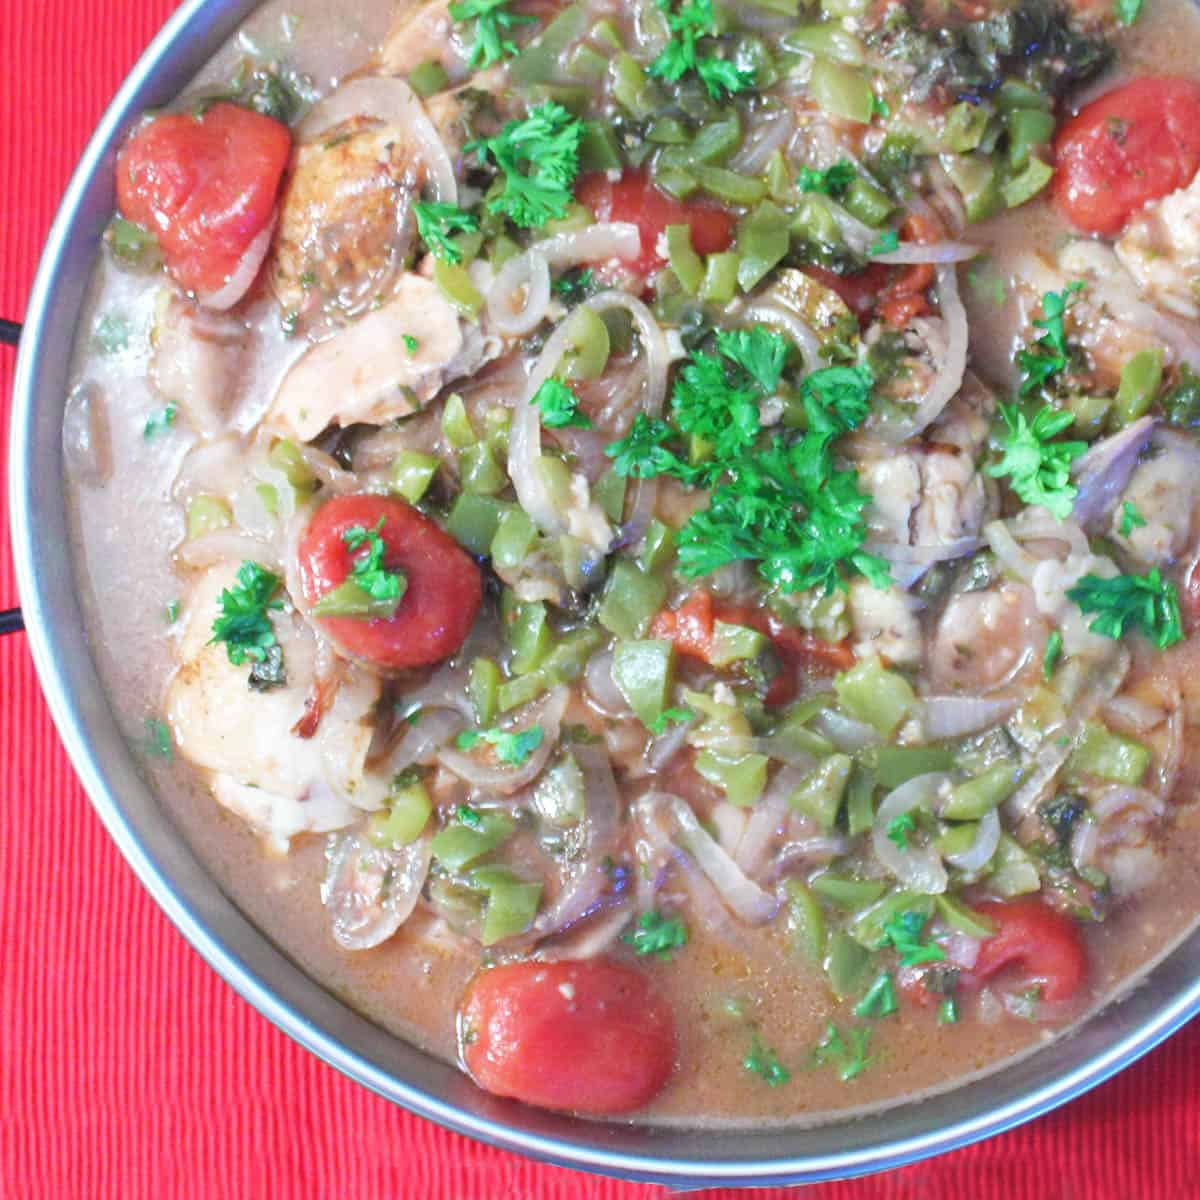 Overhead of large bowl with chicken cacciatore garnished with parsley.